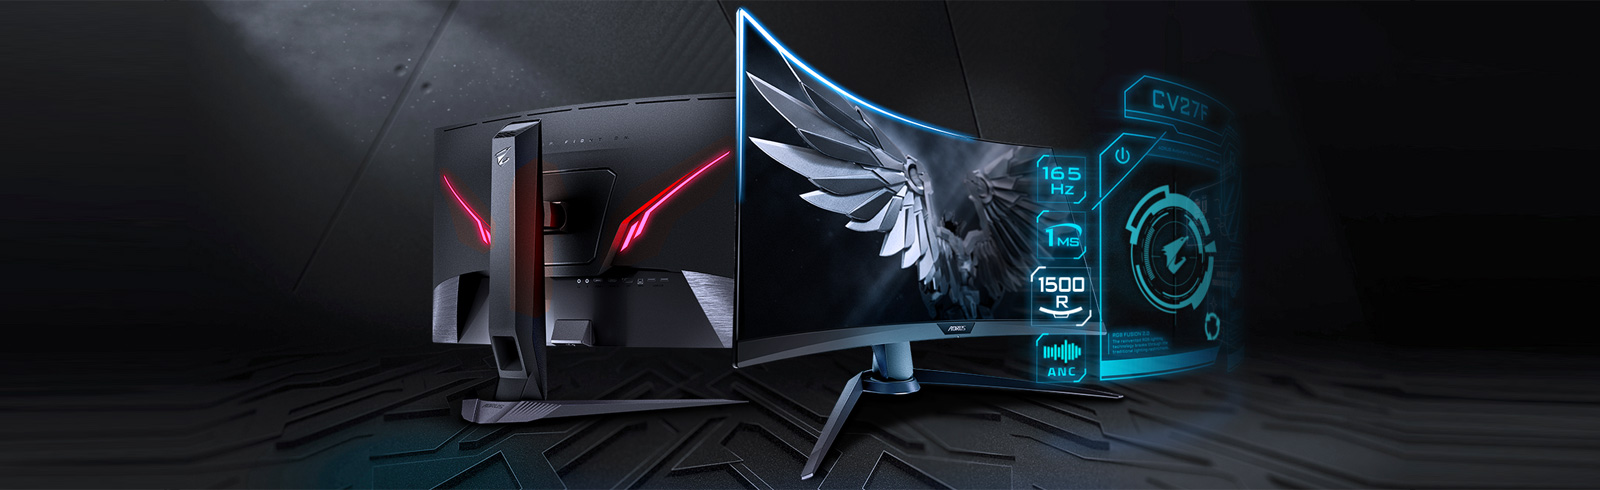 Gigabyte introduces the AORUS CV27F gaming monitor with a 1500R curvature